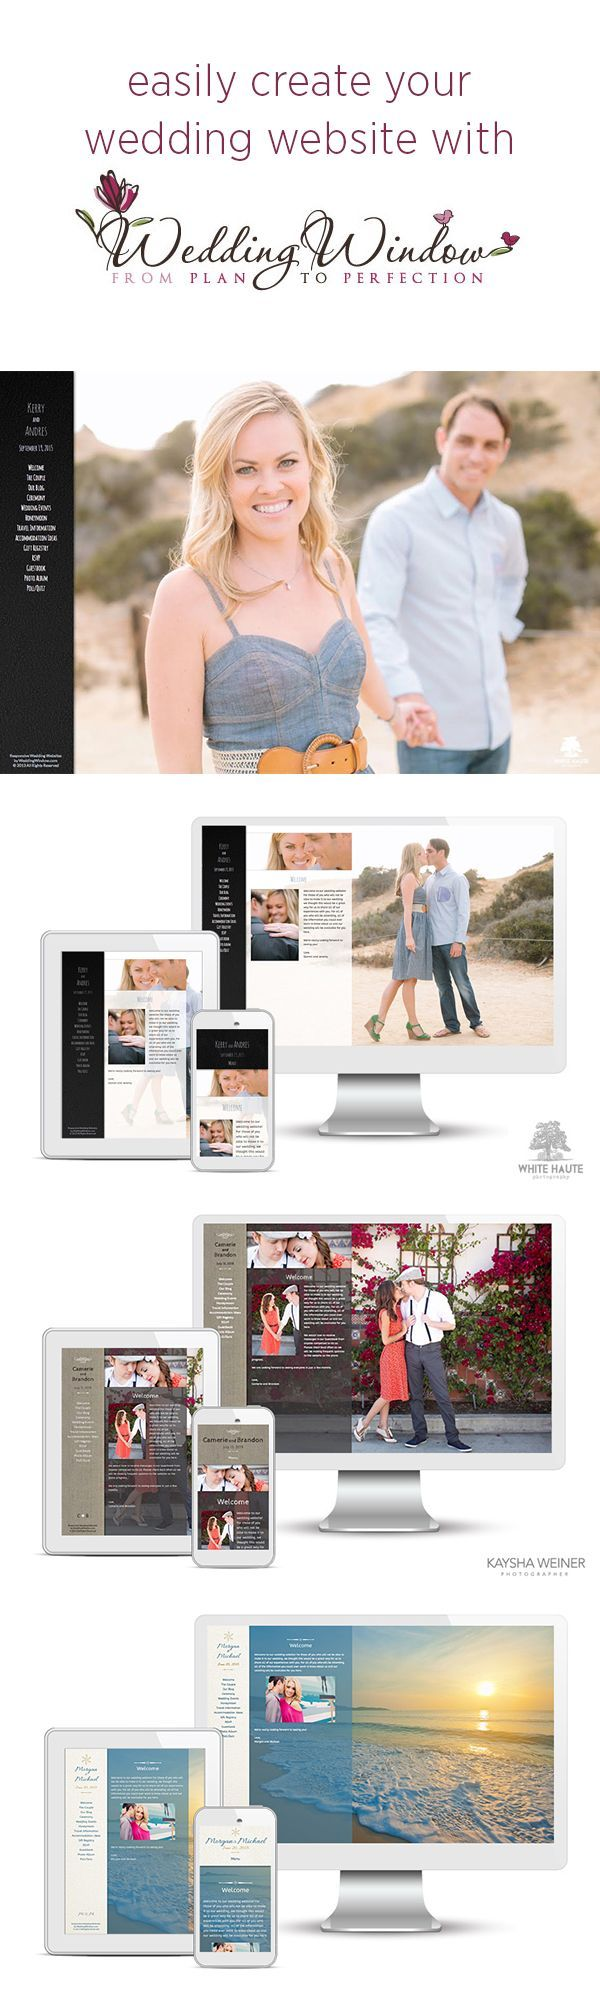 Create Your Wedding Website with Wedding Window